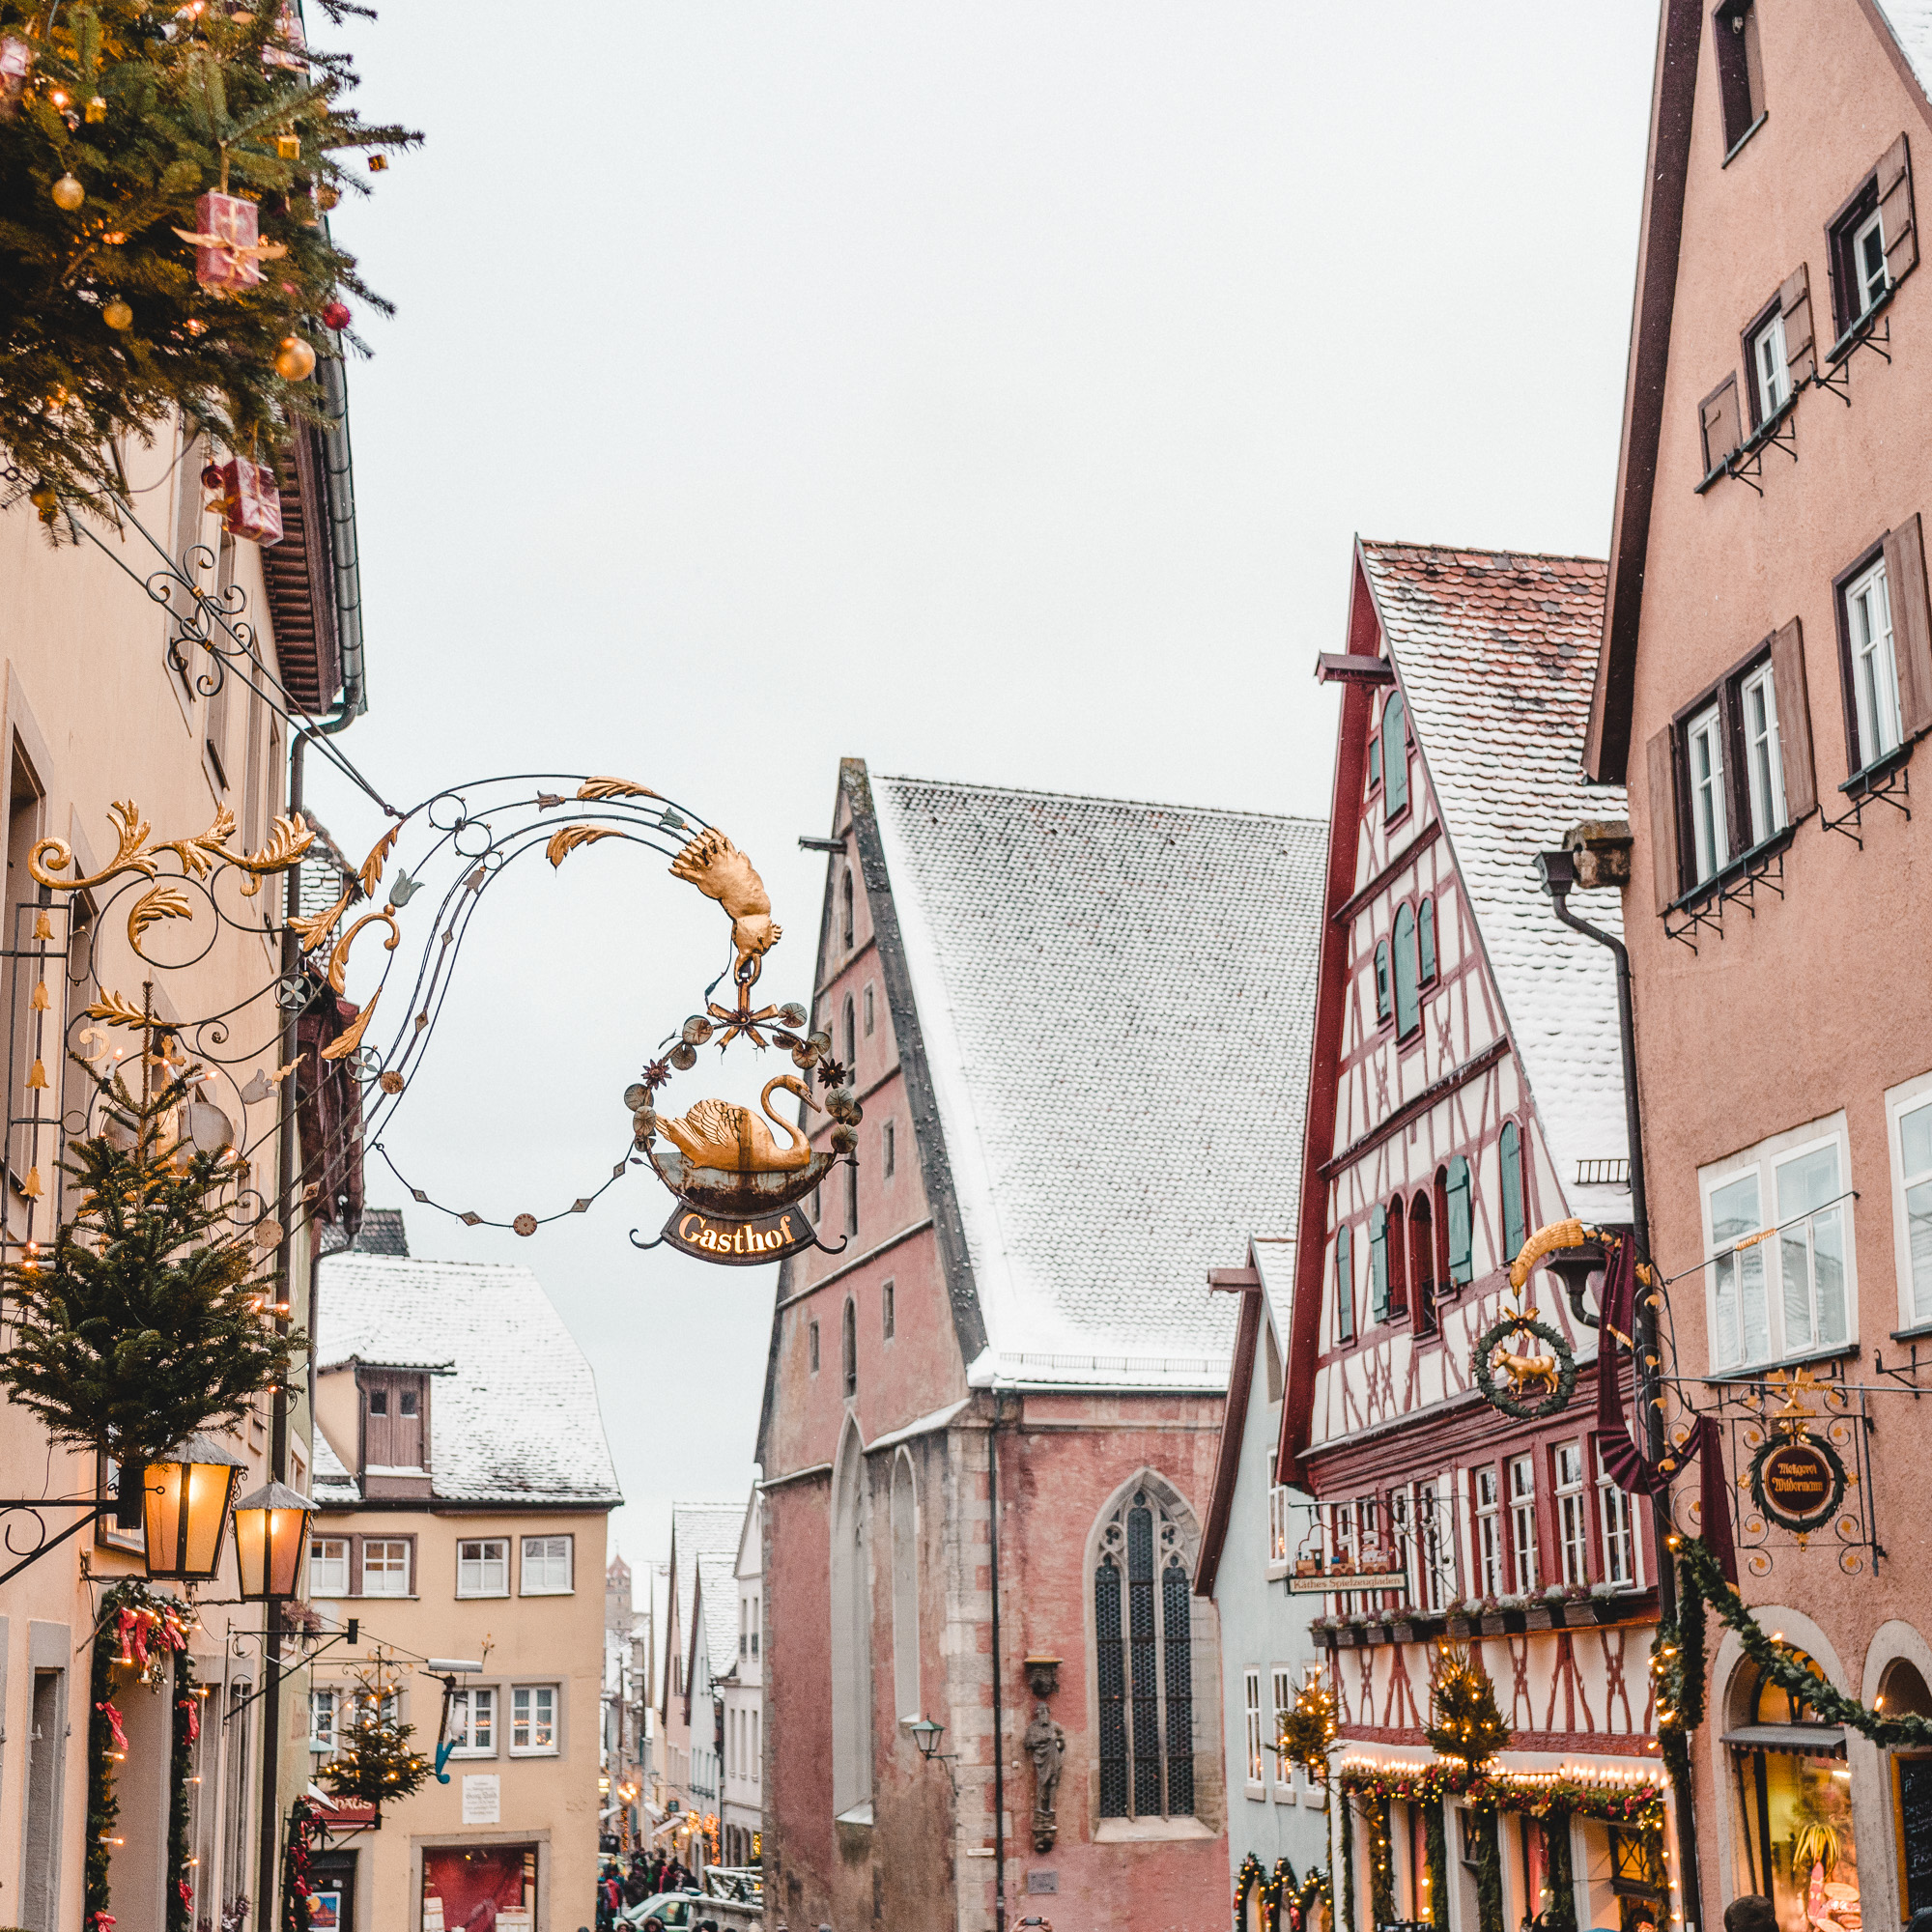 Snow covered rooftops in the pastel town of rothenburg ob der tauber germany christmas time